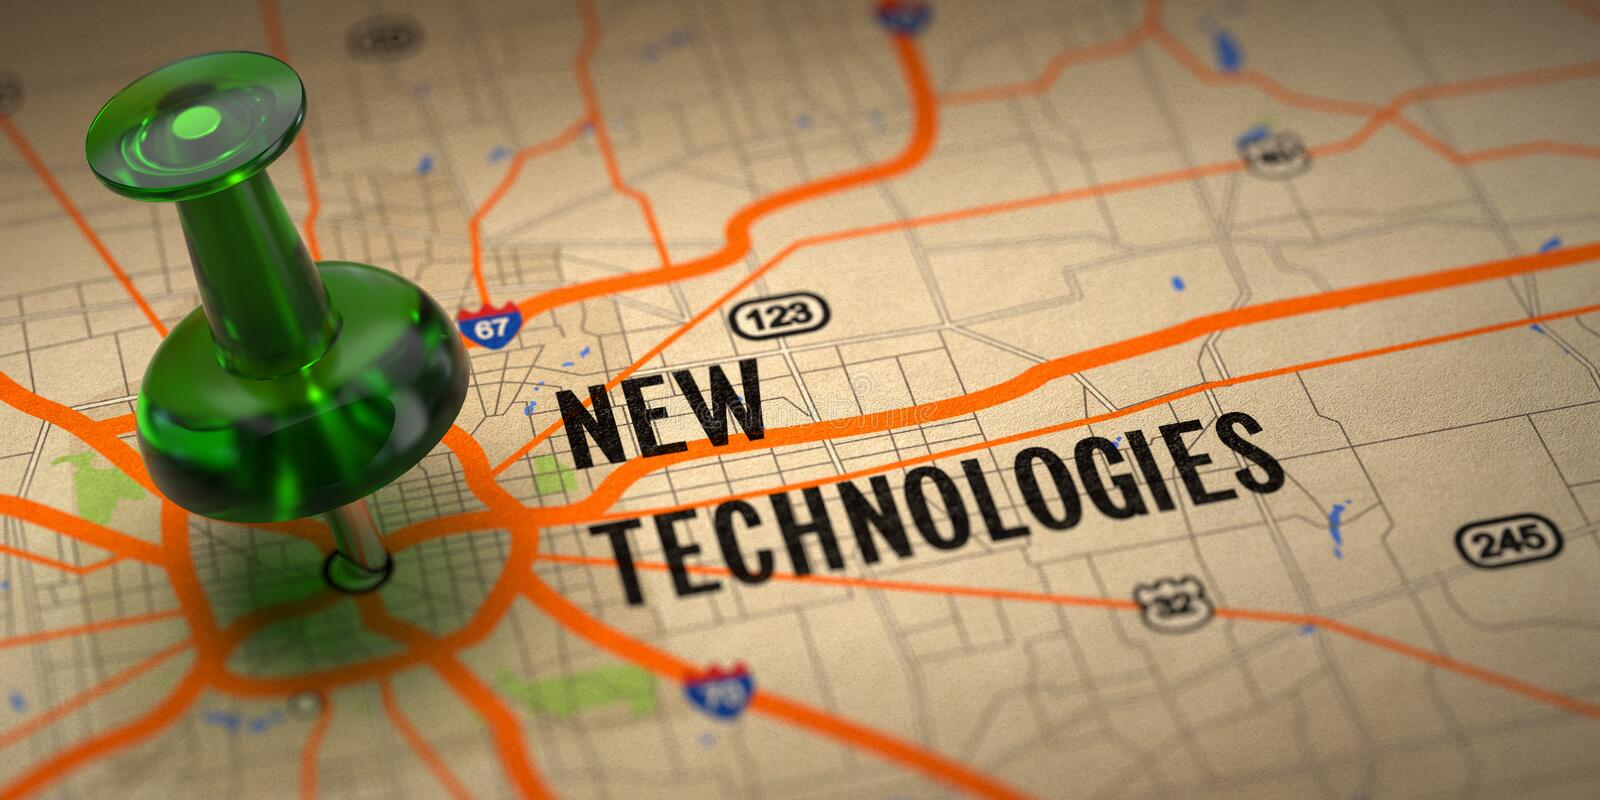 New Technologies - Green Pushpin on a Map Background. royalty free stock images